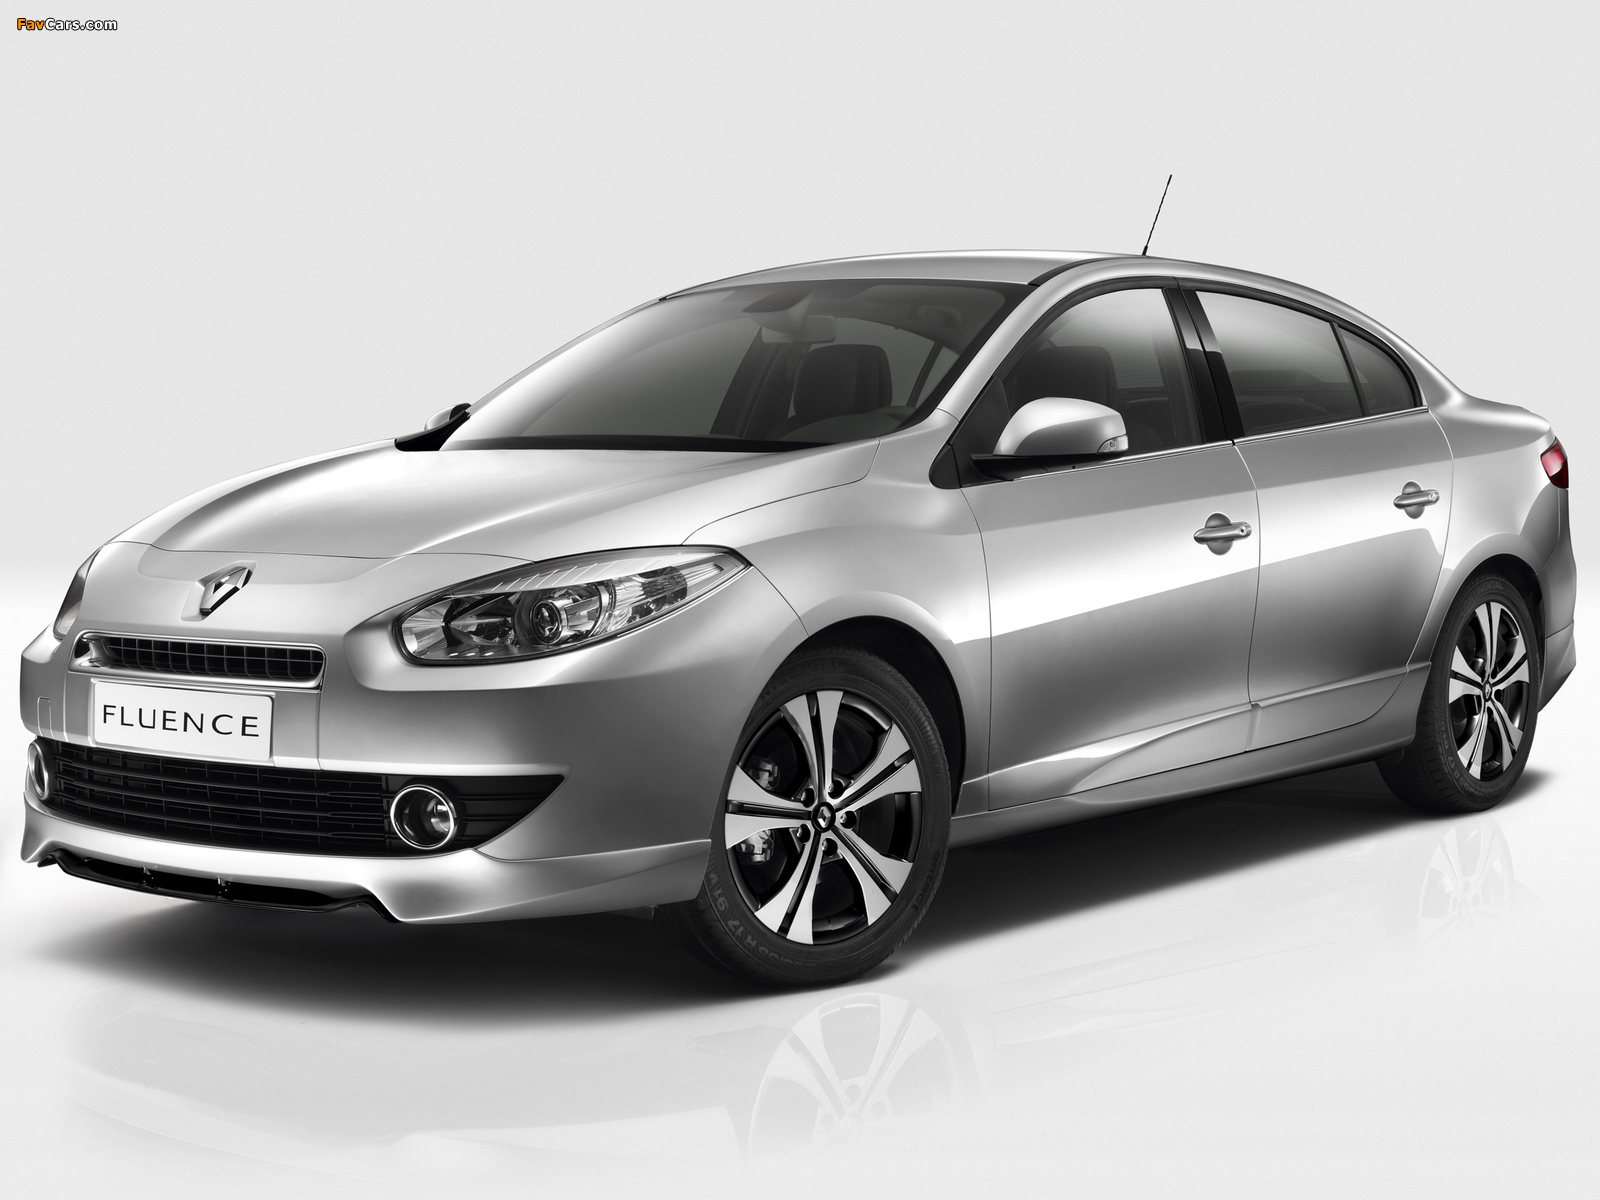 Renault Fluence Black Edition 2012 pictures (1600 x 1200)